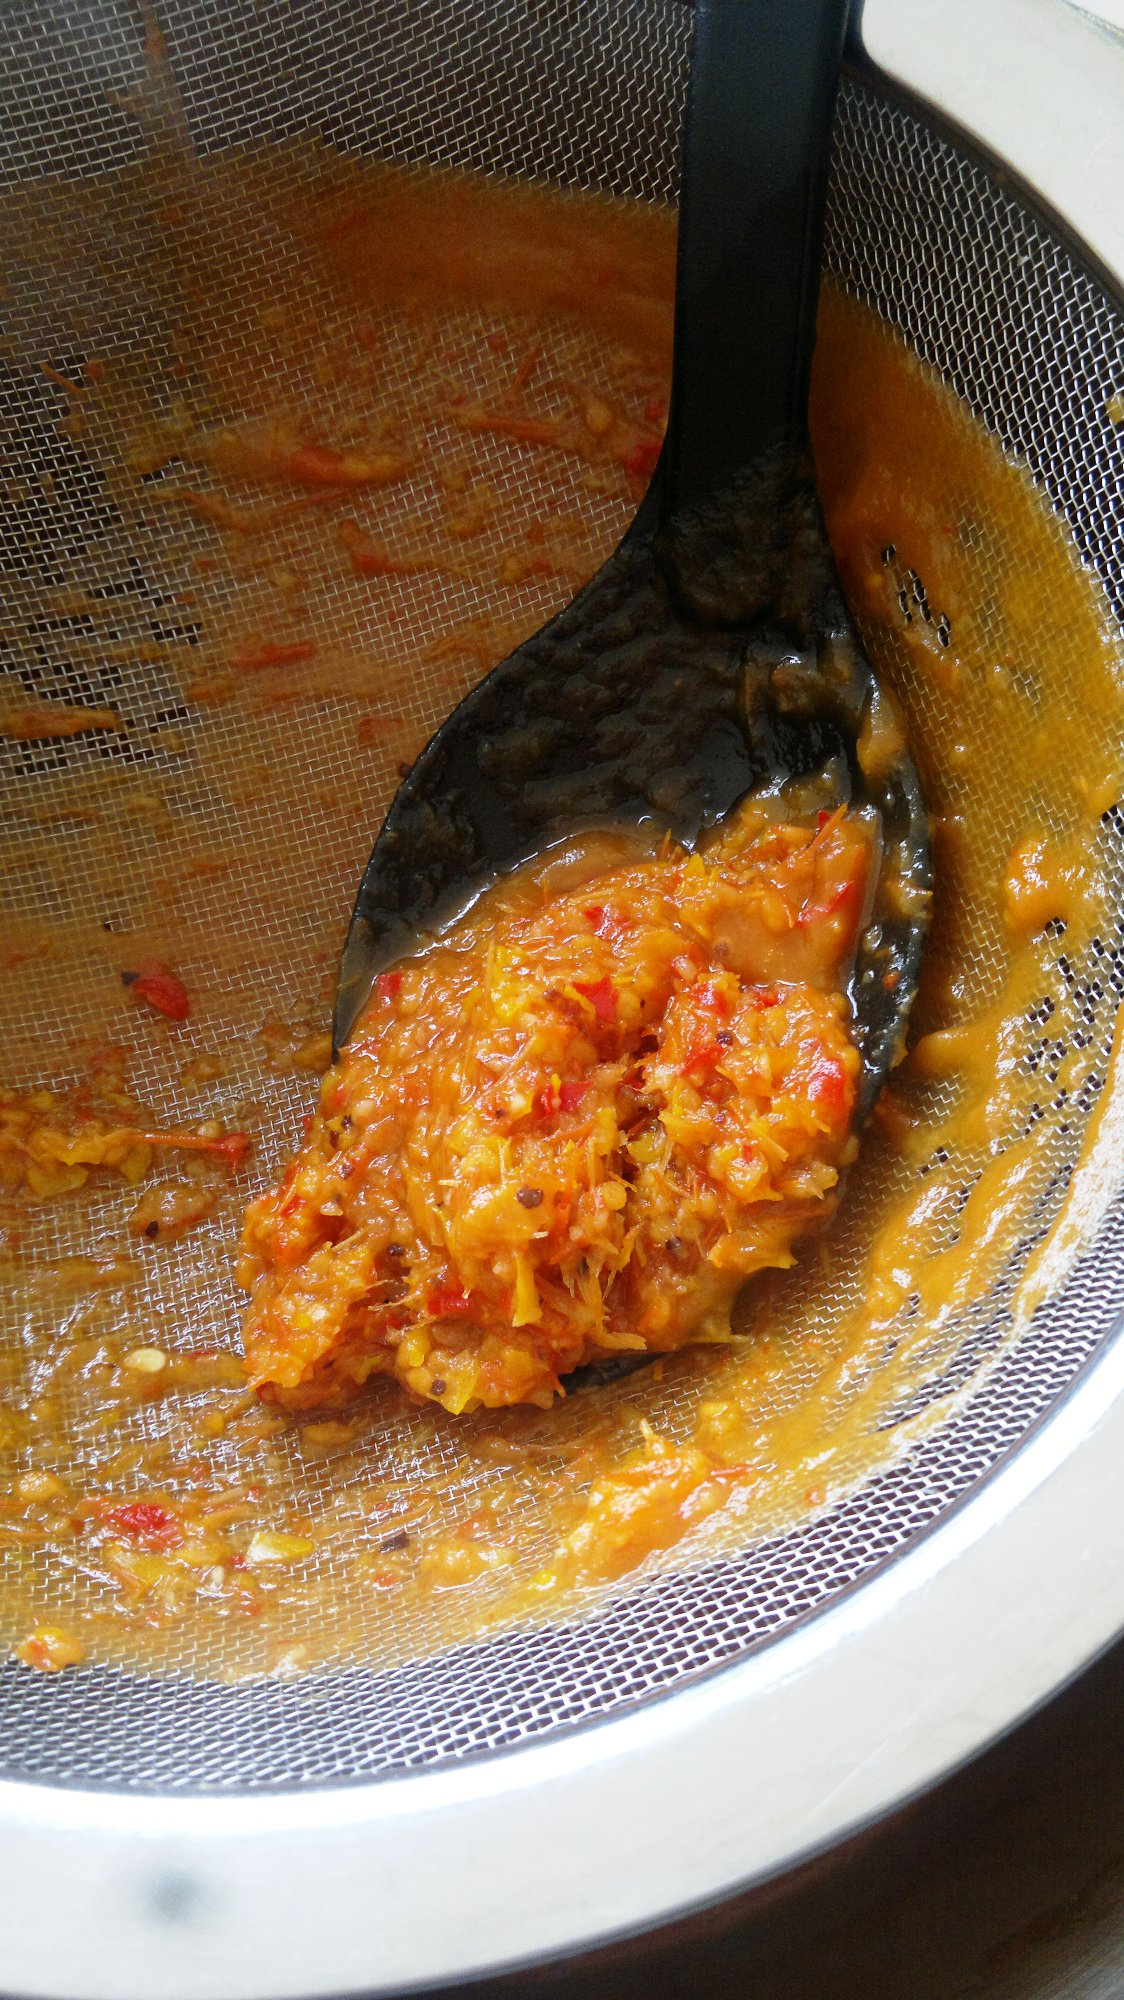 Sieving the sauce to remove pips and fibre